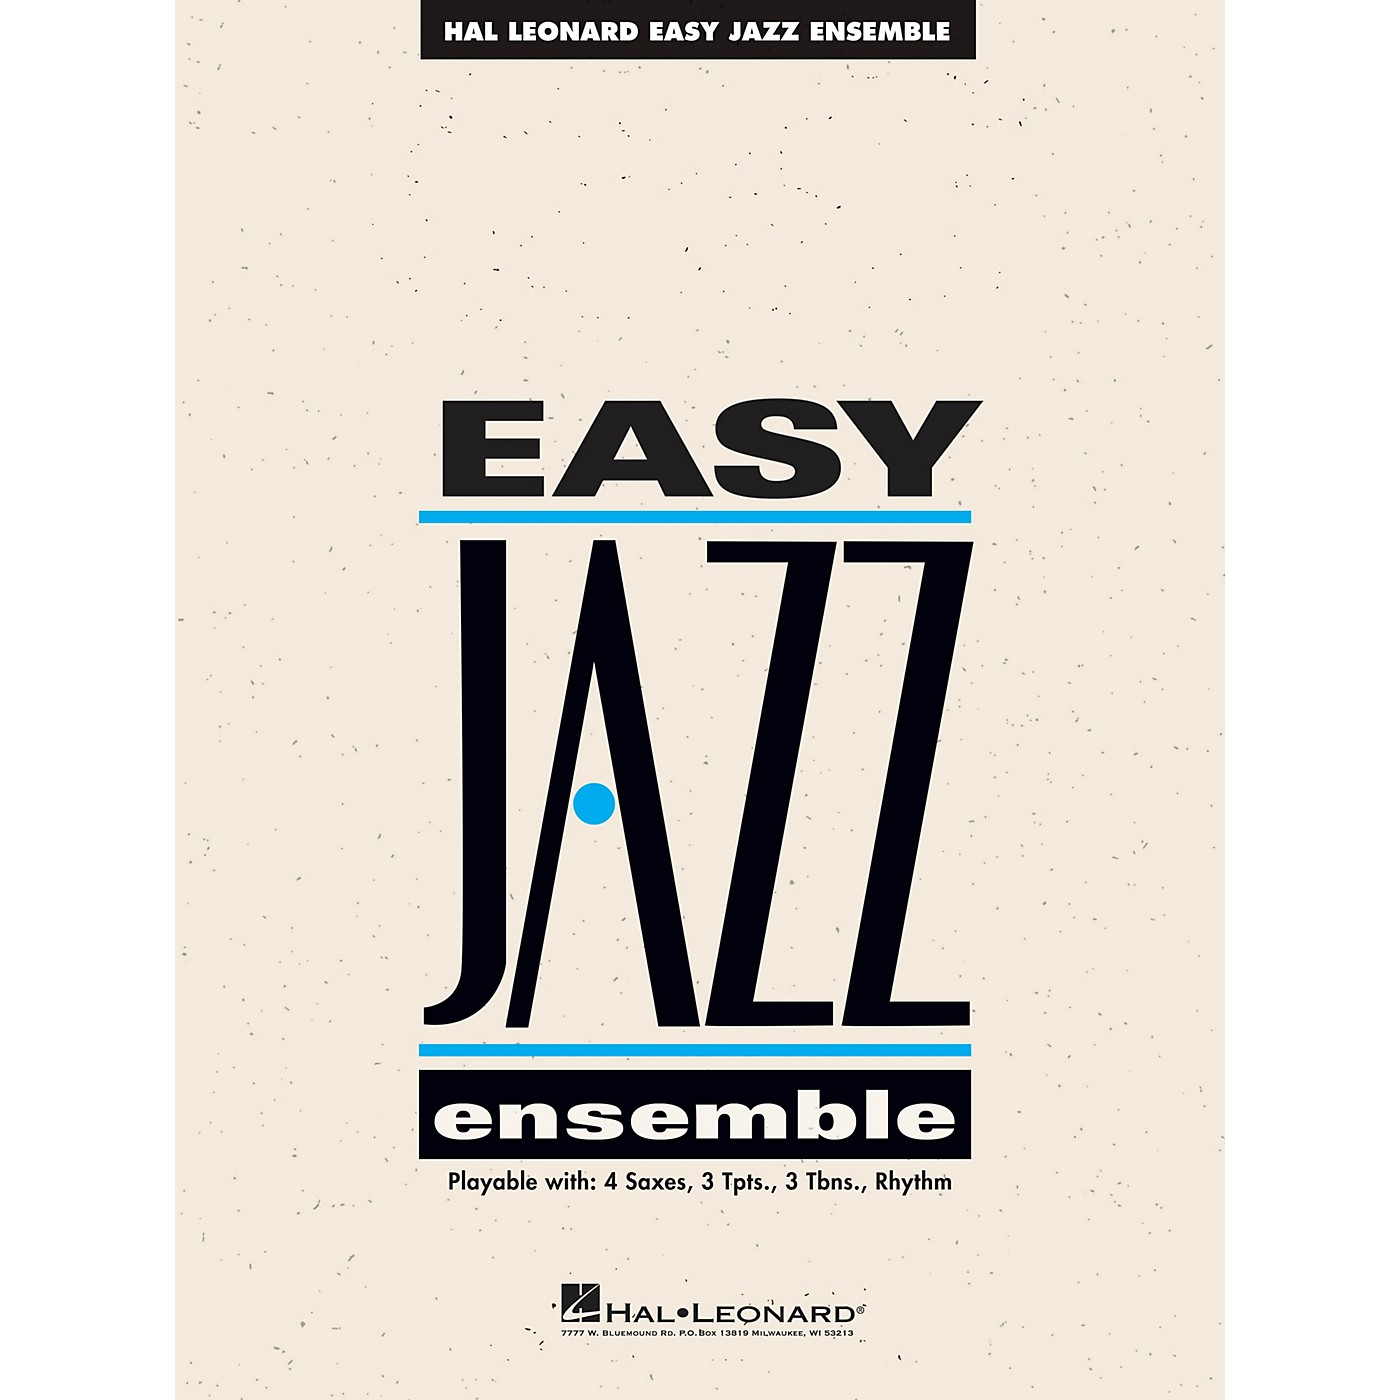 Hal Leonard The Best of Easy Jazz - Trombone 3 (15 Selections from the Easy Jazz Ensemble Series) Jazz Band Level 2 thumbnail